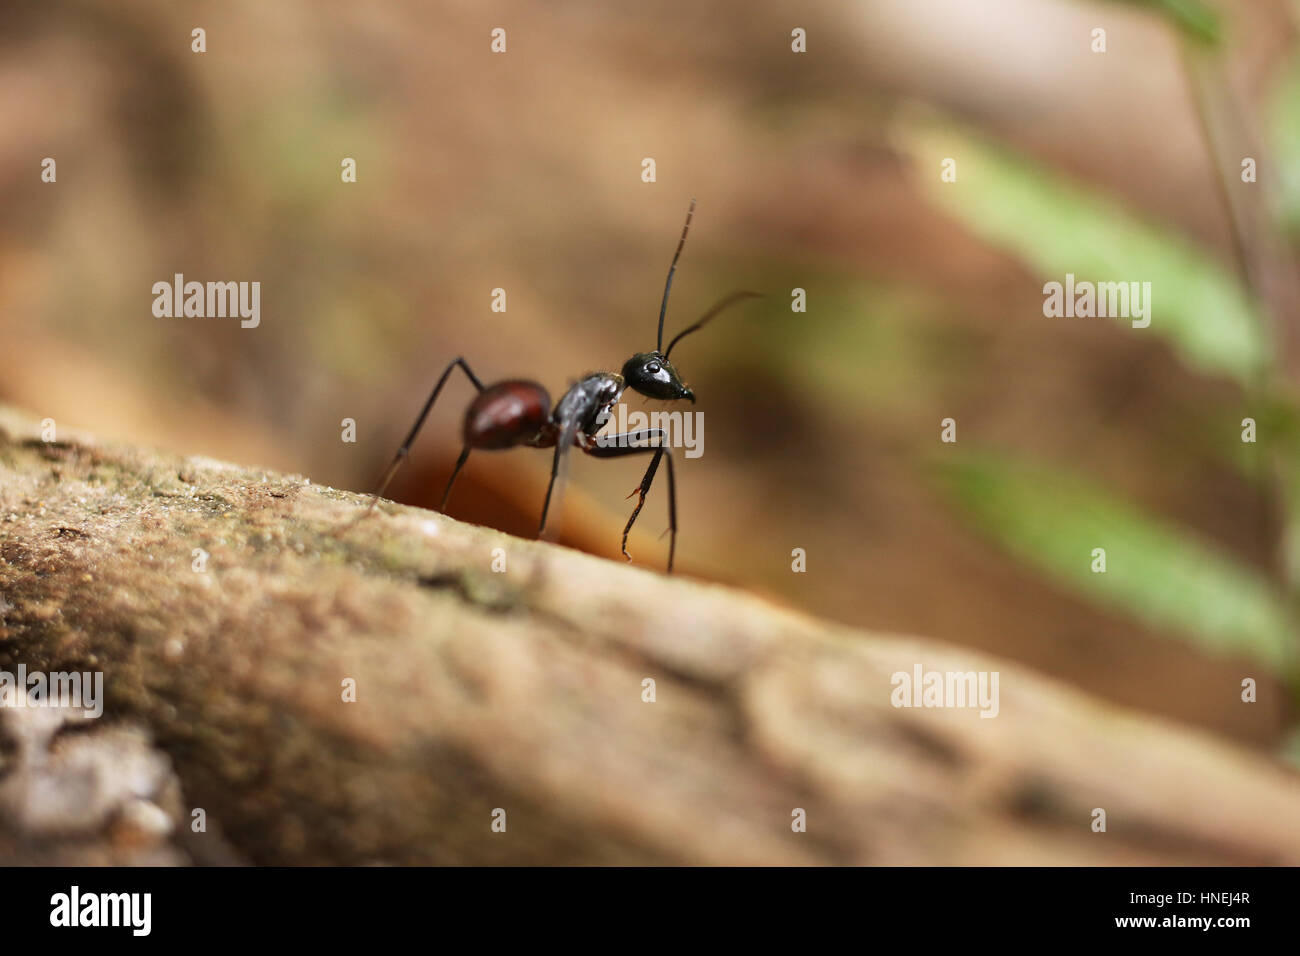 Ants Life Stock Photos Ants Life Stock Images Alamy